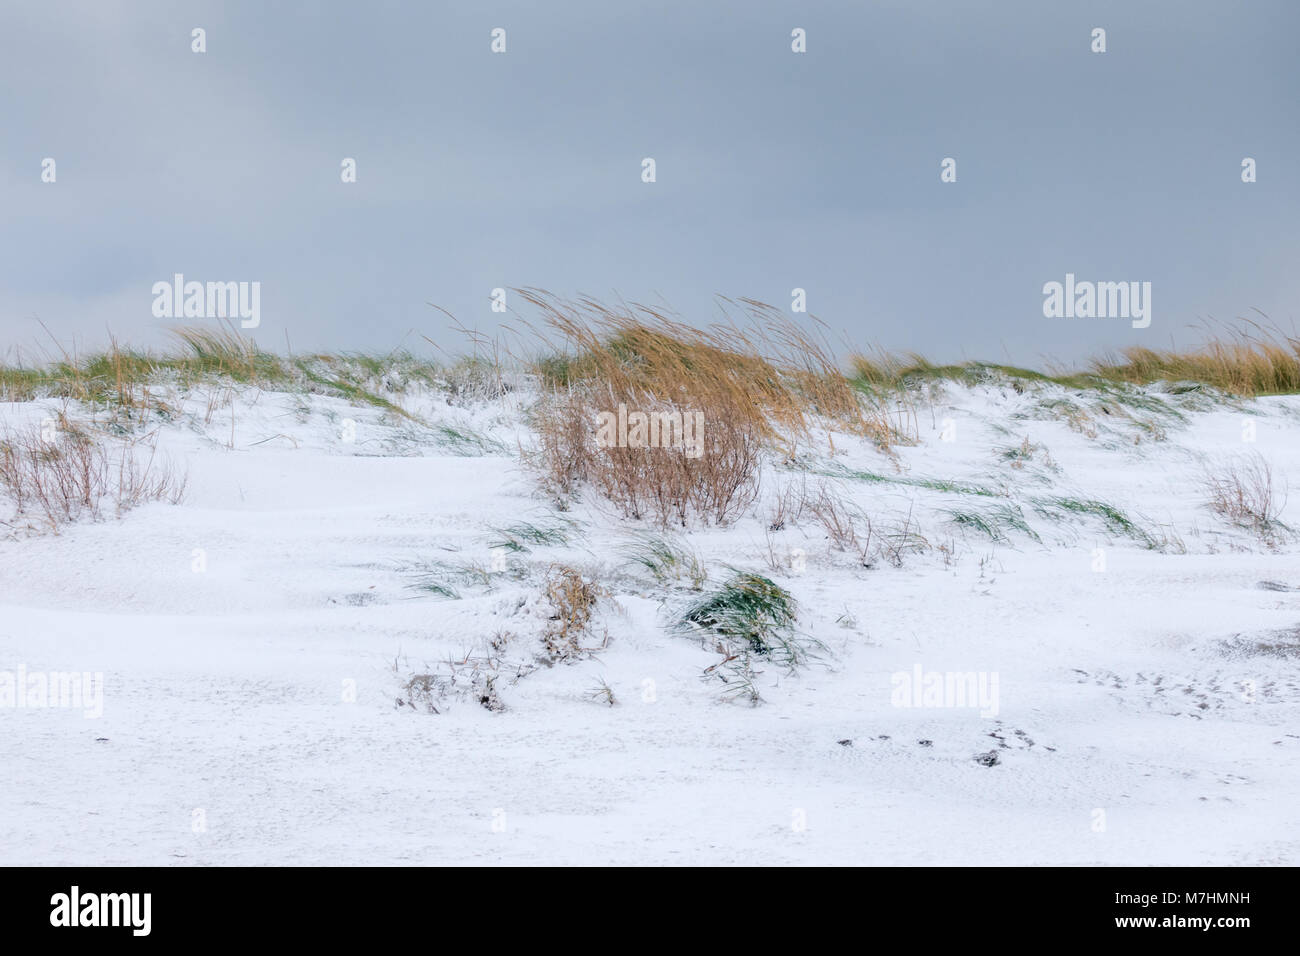 Winter on the beach in Ireland - Stock Image